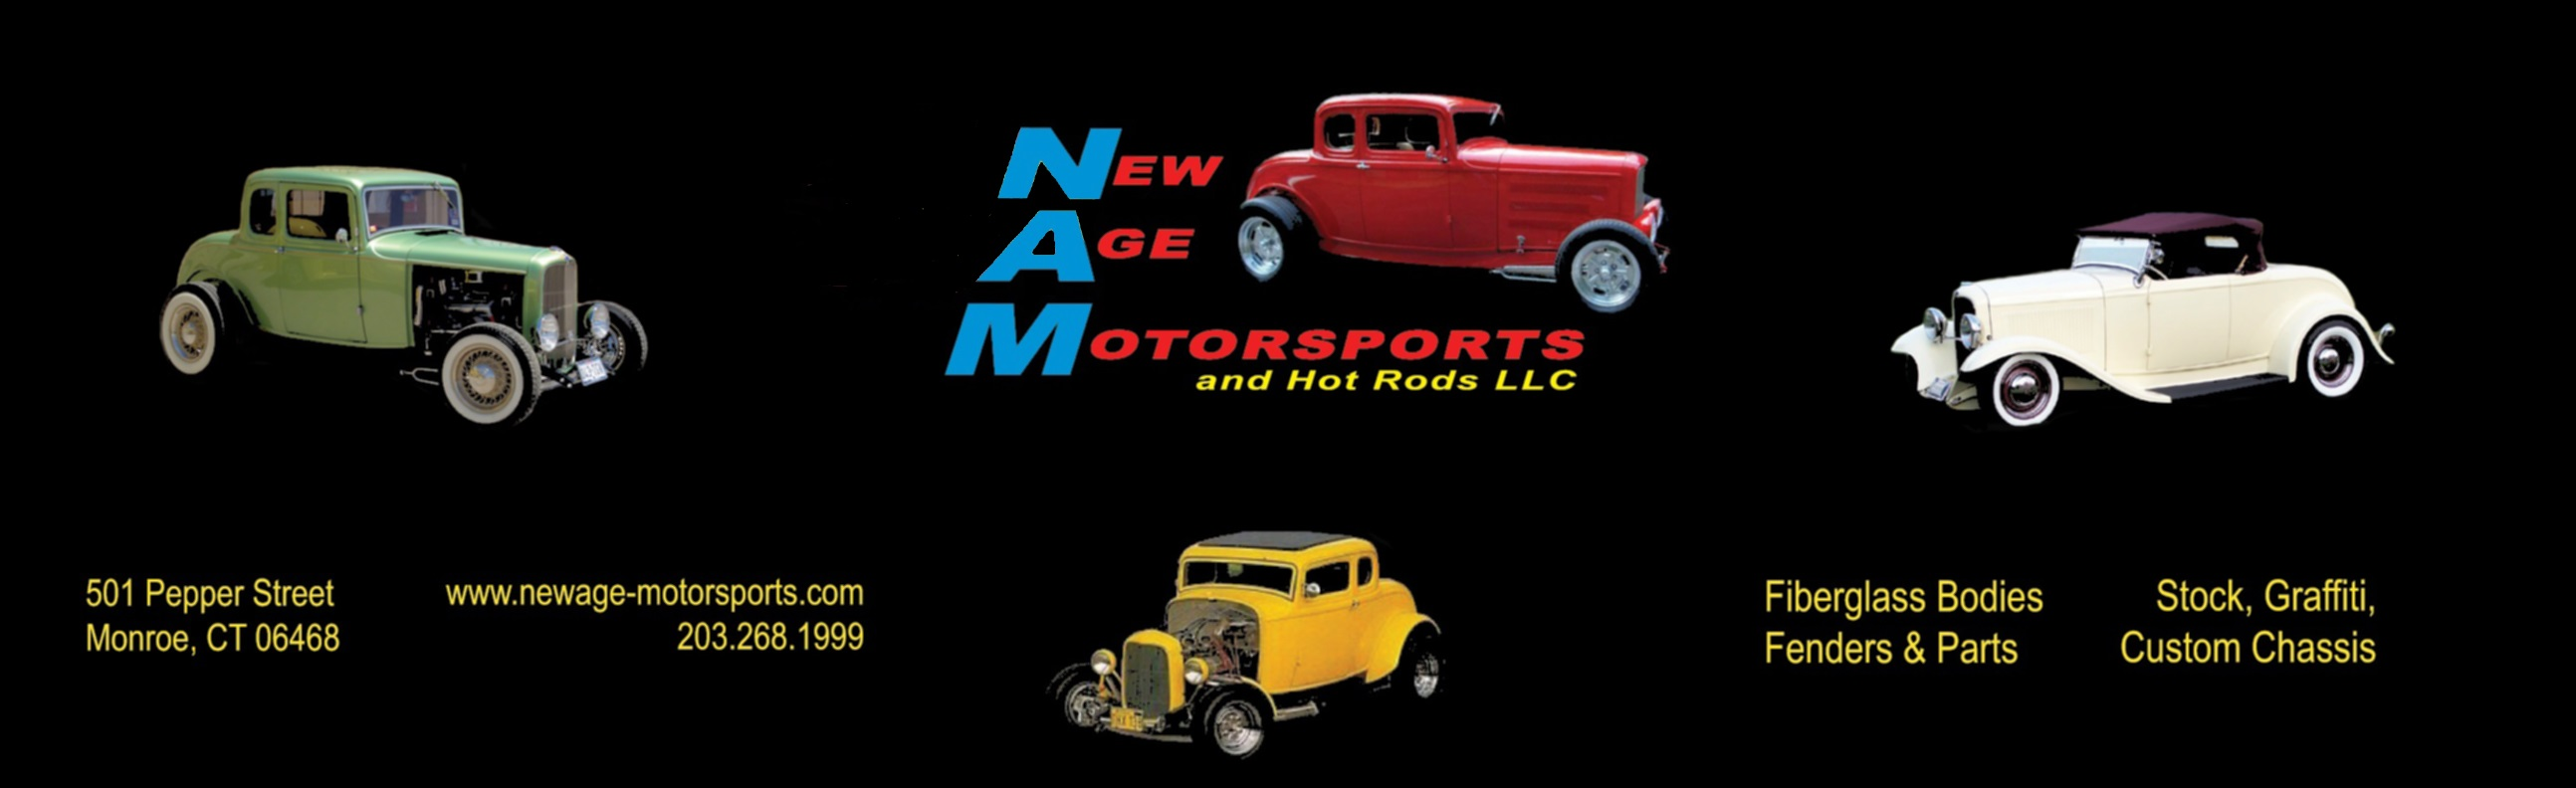 New Age Motorsports & Hot Rods